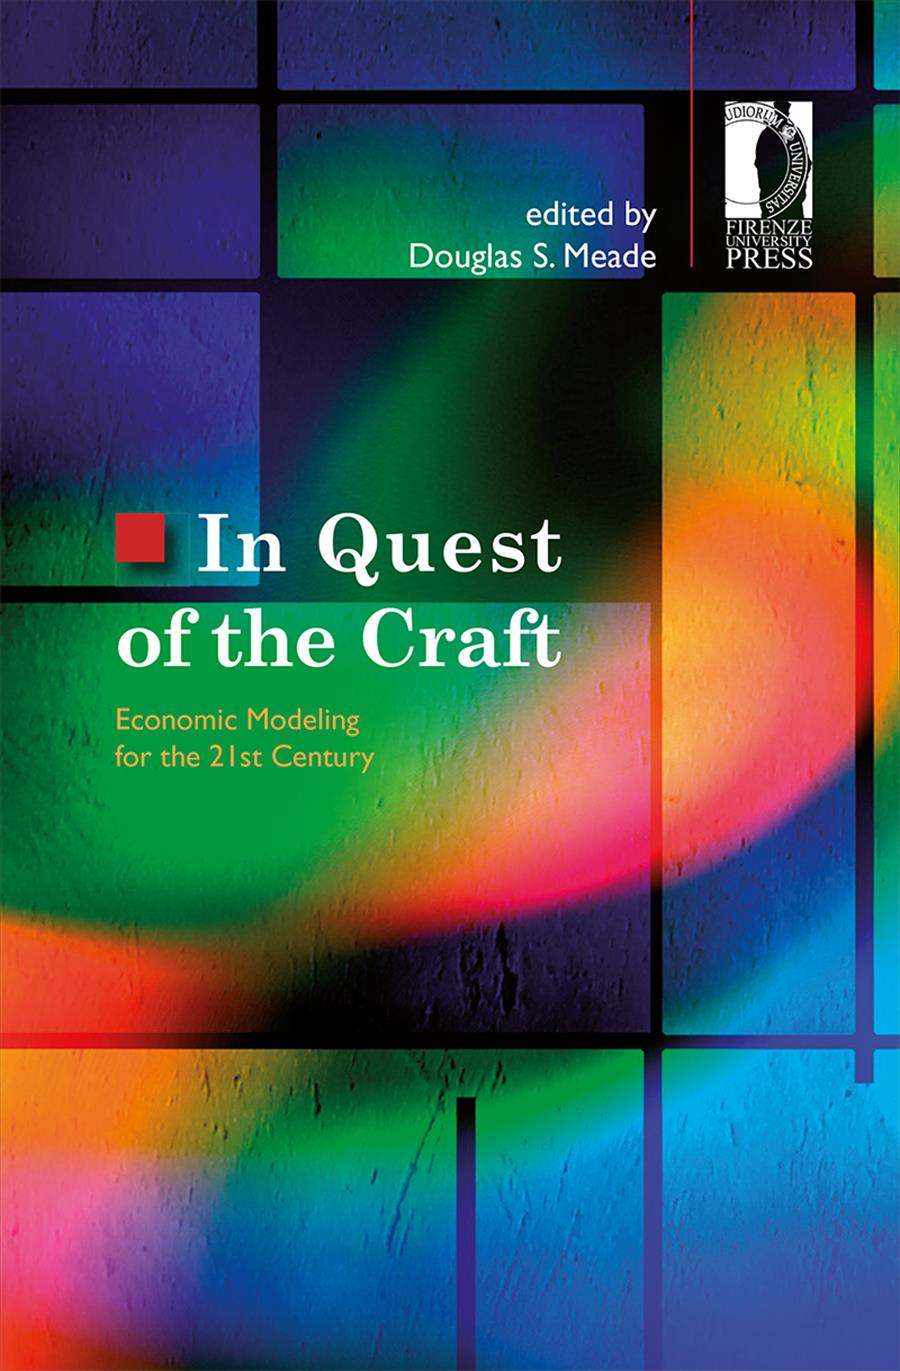 In Quest of the Craft